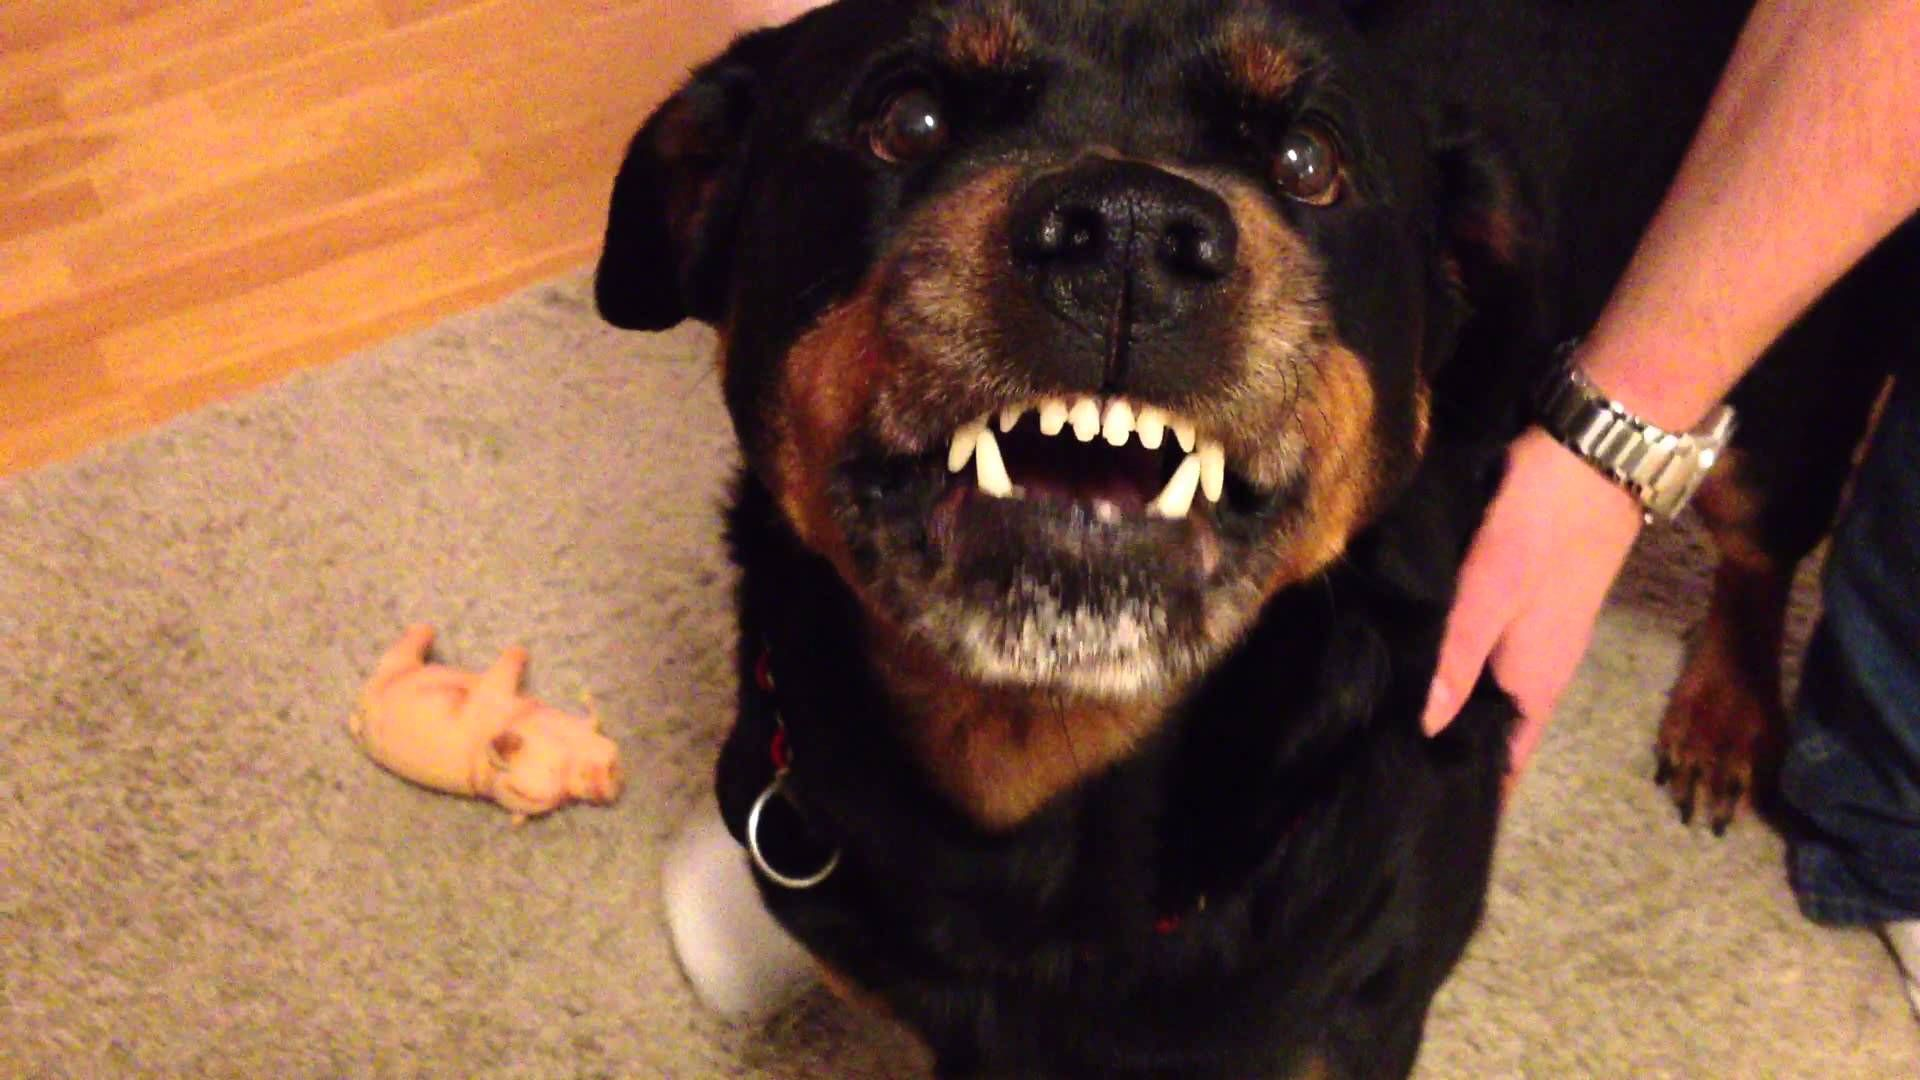 Angry Rottweiler 2 Rottweiler Rottweiler Dog Dogs And Kids